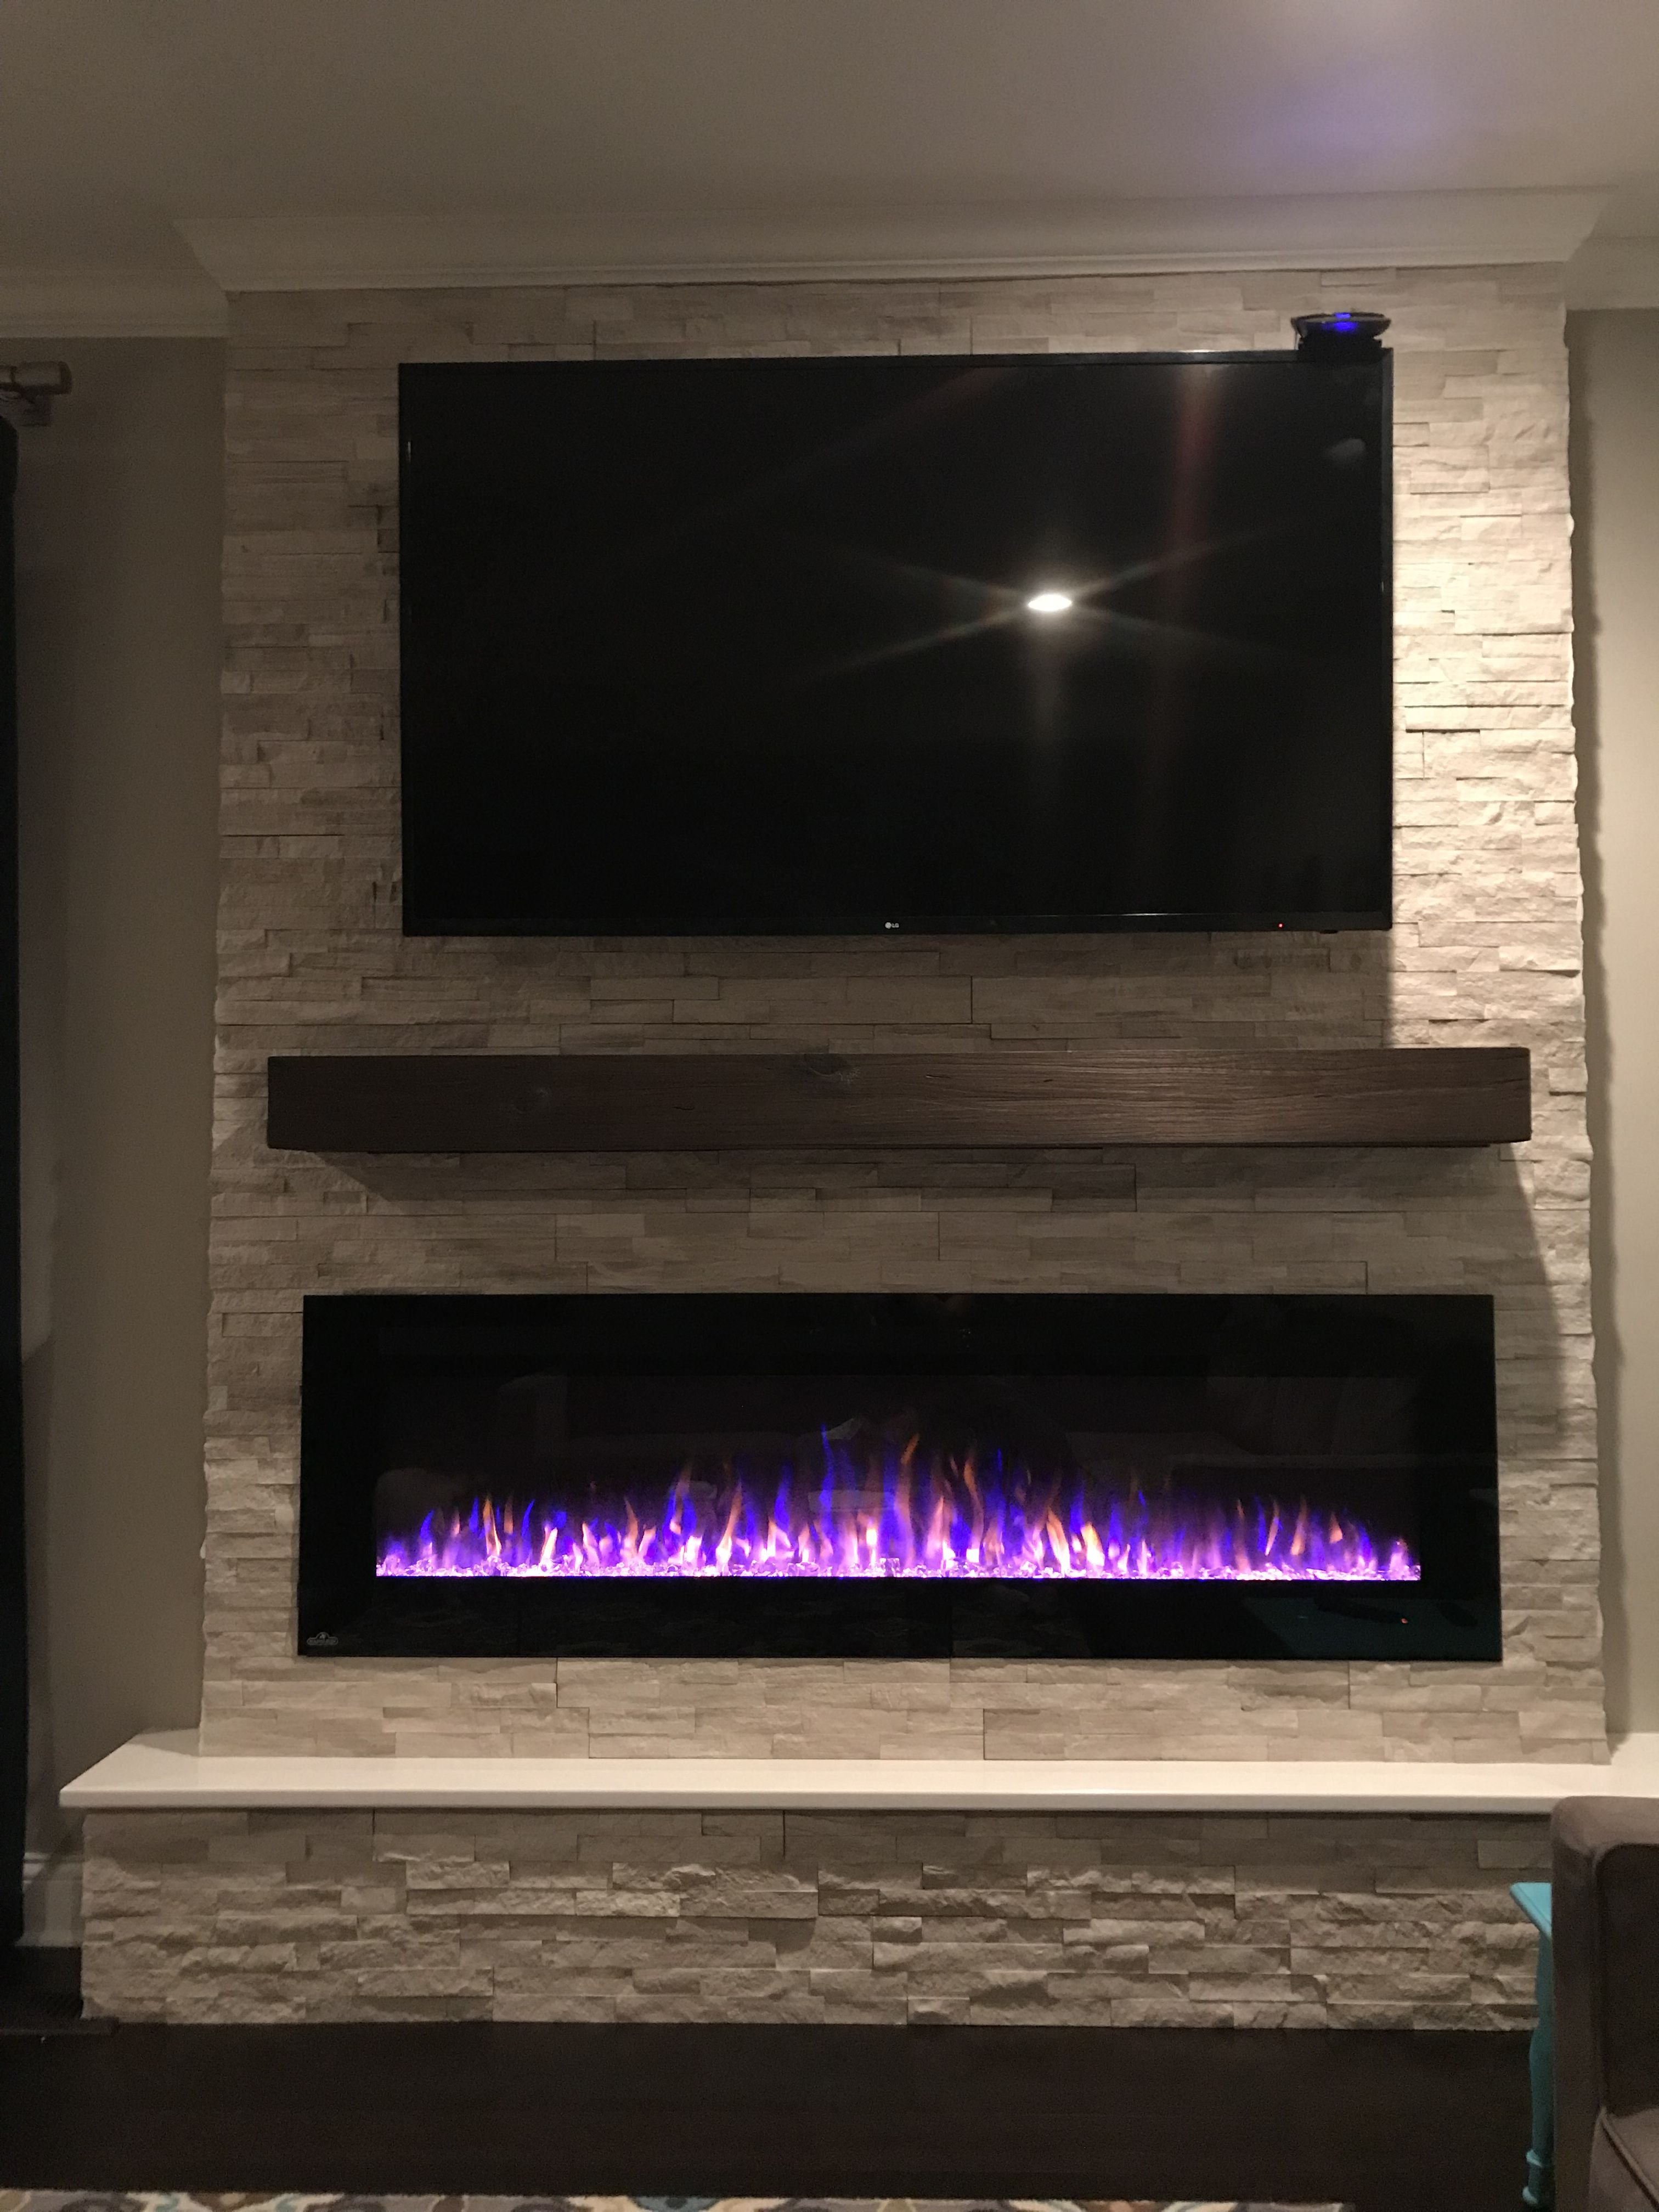 Obtaining A Remodeling Estimate Fireplace Tv Wall Basement Fireplace Living Room Tv Wall